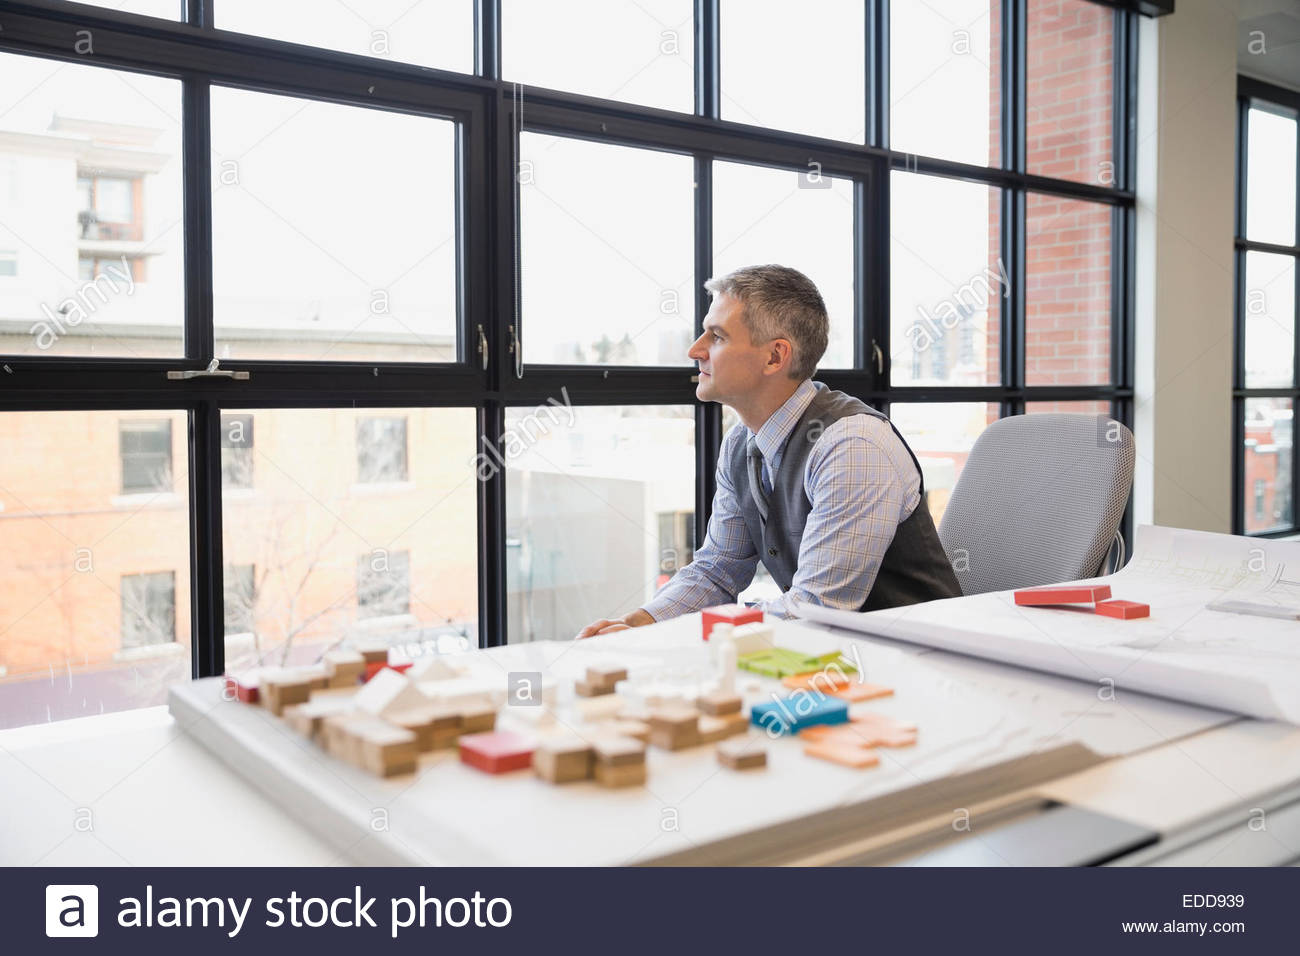 Pensive architect looking out office window - Stock Image